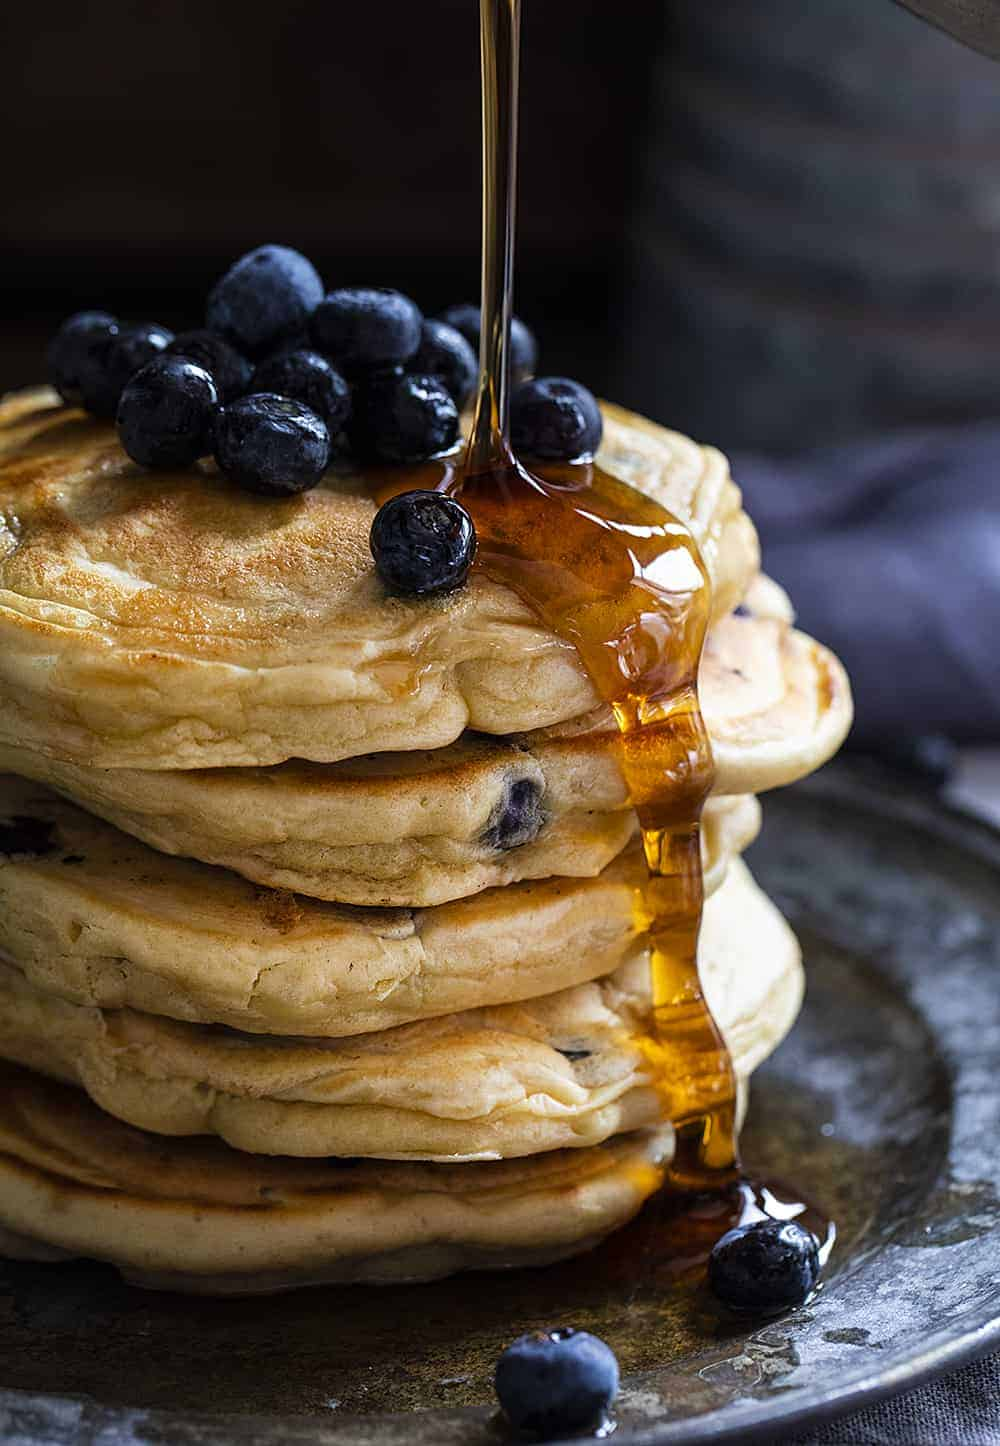 Pouring Syrup over Blueberry Sourdough Pancakes with Fresh Blueberries